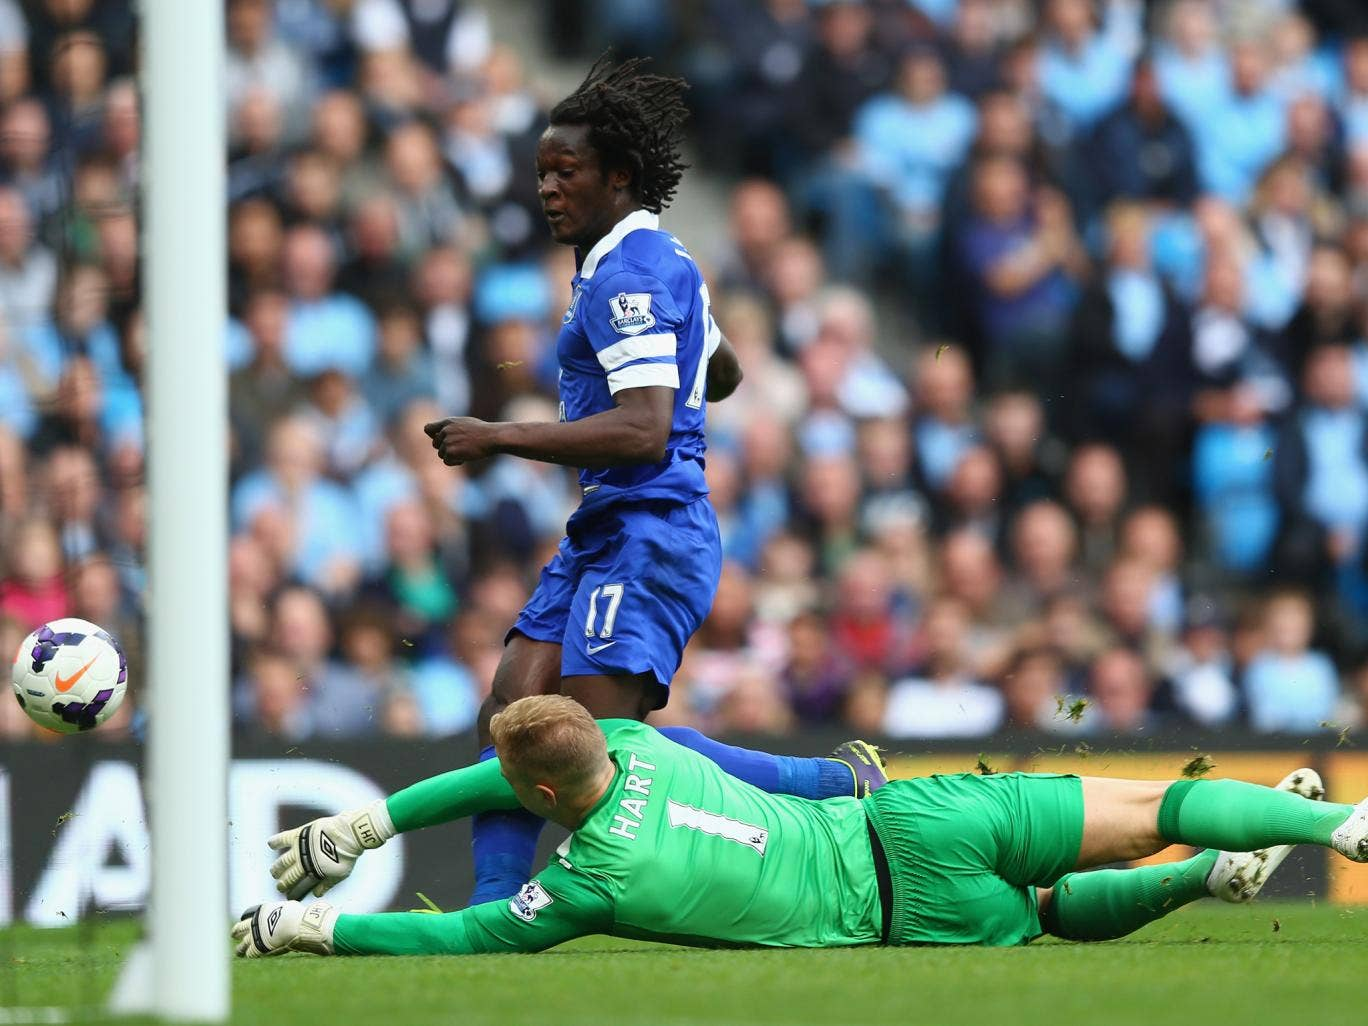 Joe Hart dives to try and save a shot from Romelu Lukaku